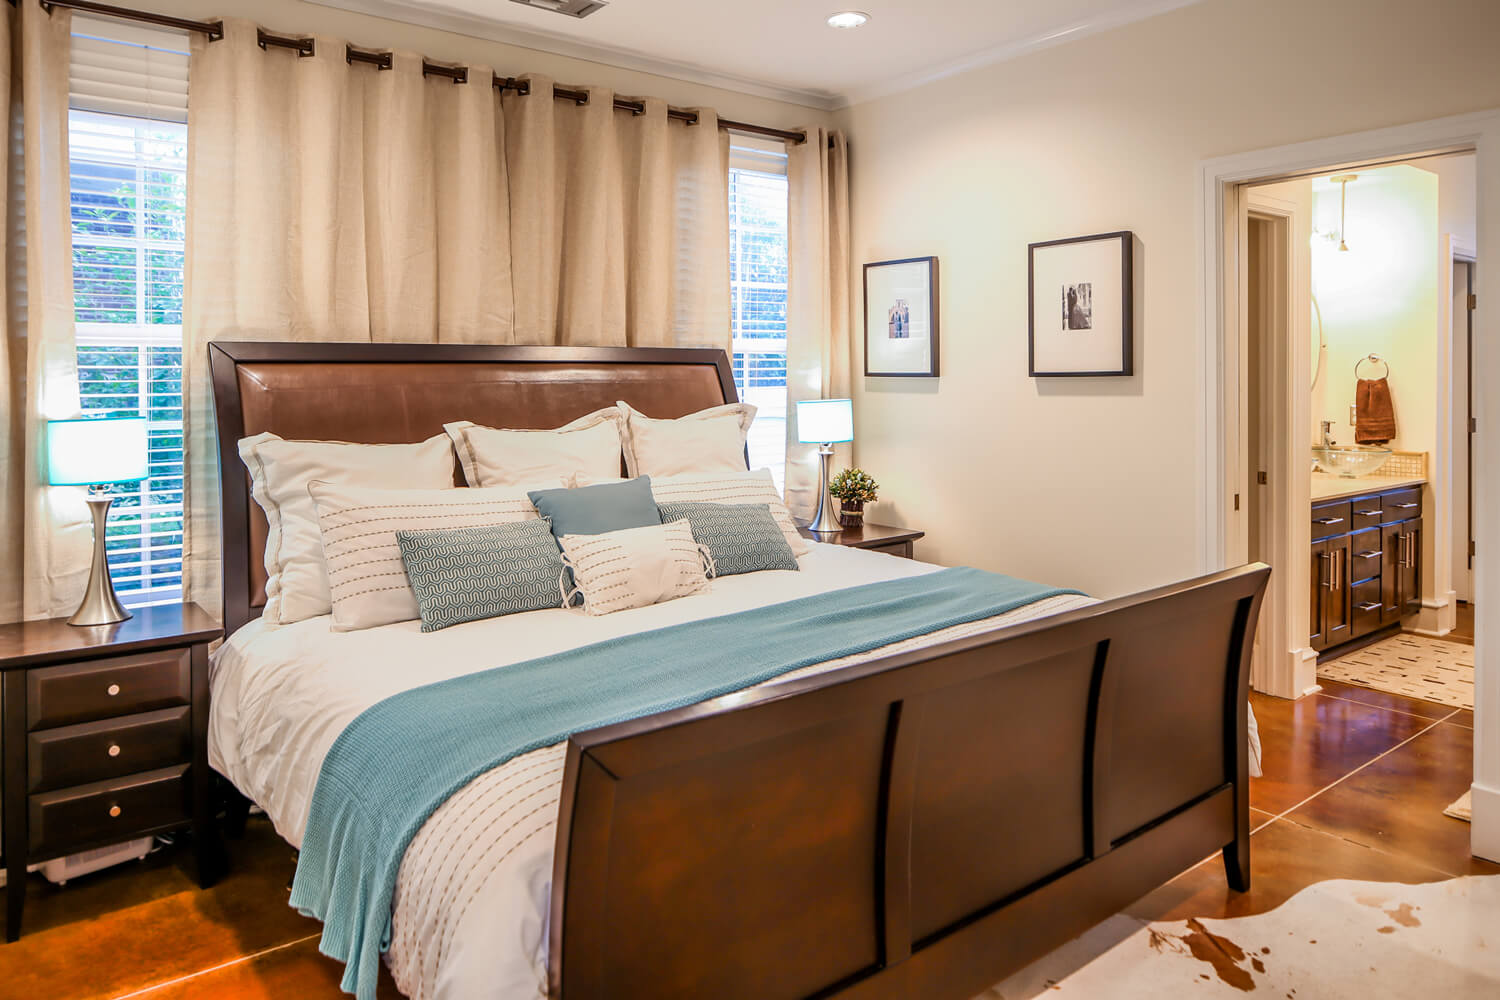 Lockwood Residence - Master Bedroom - Designed by Foshee Architecture